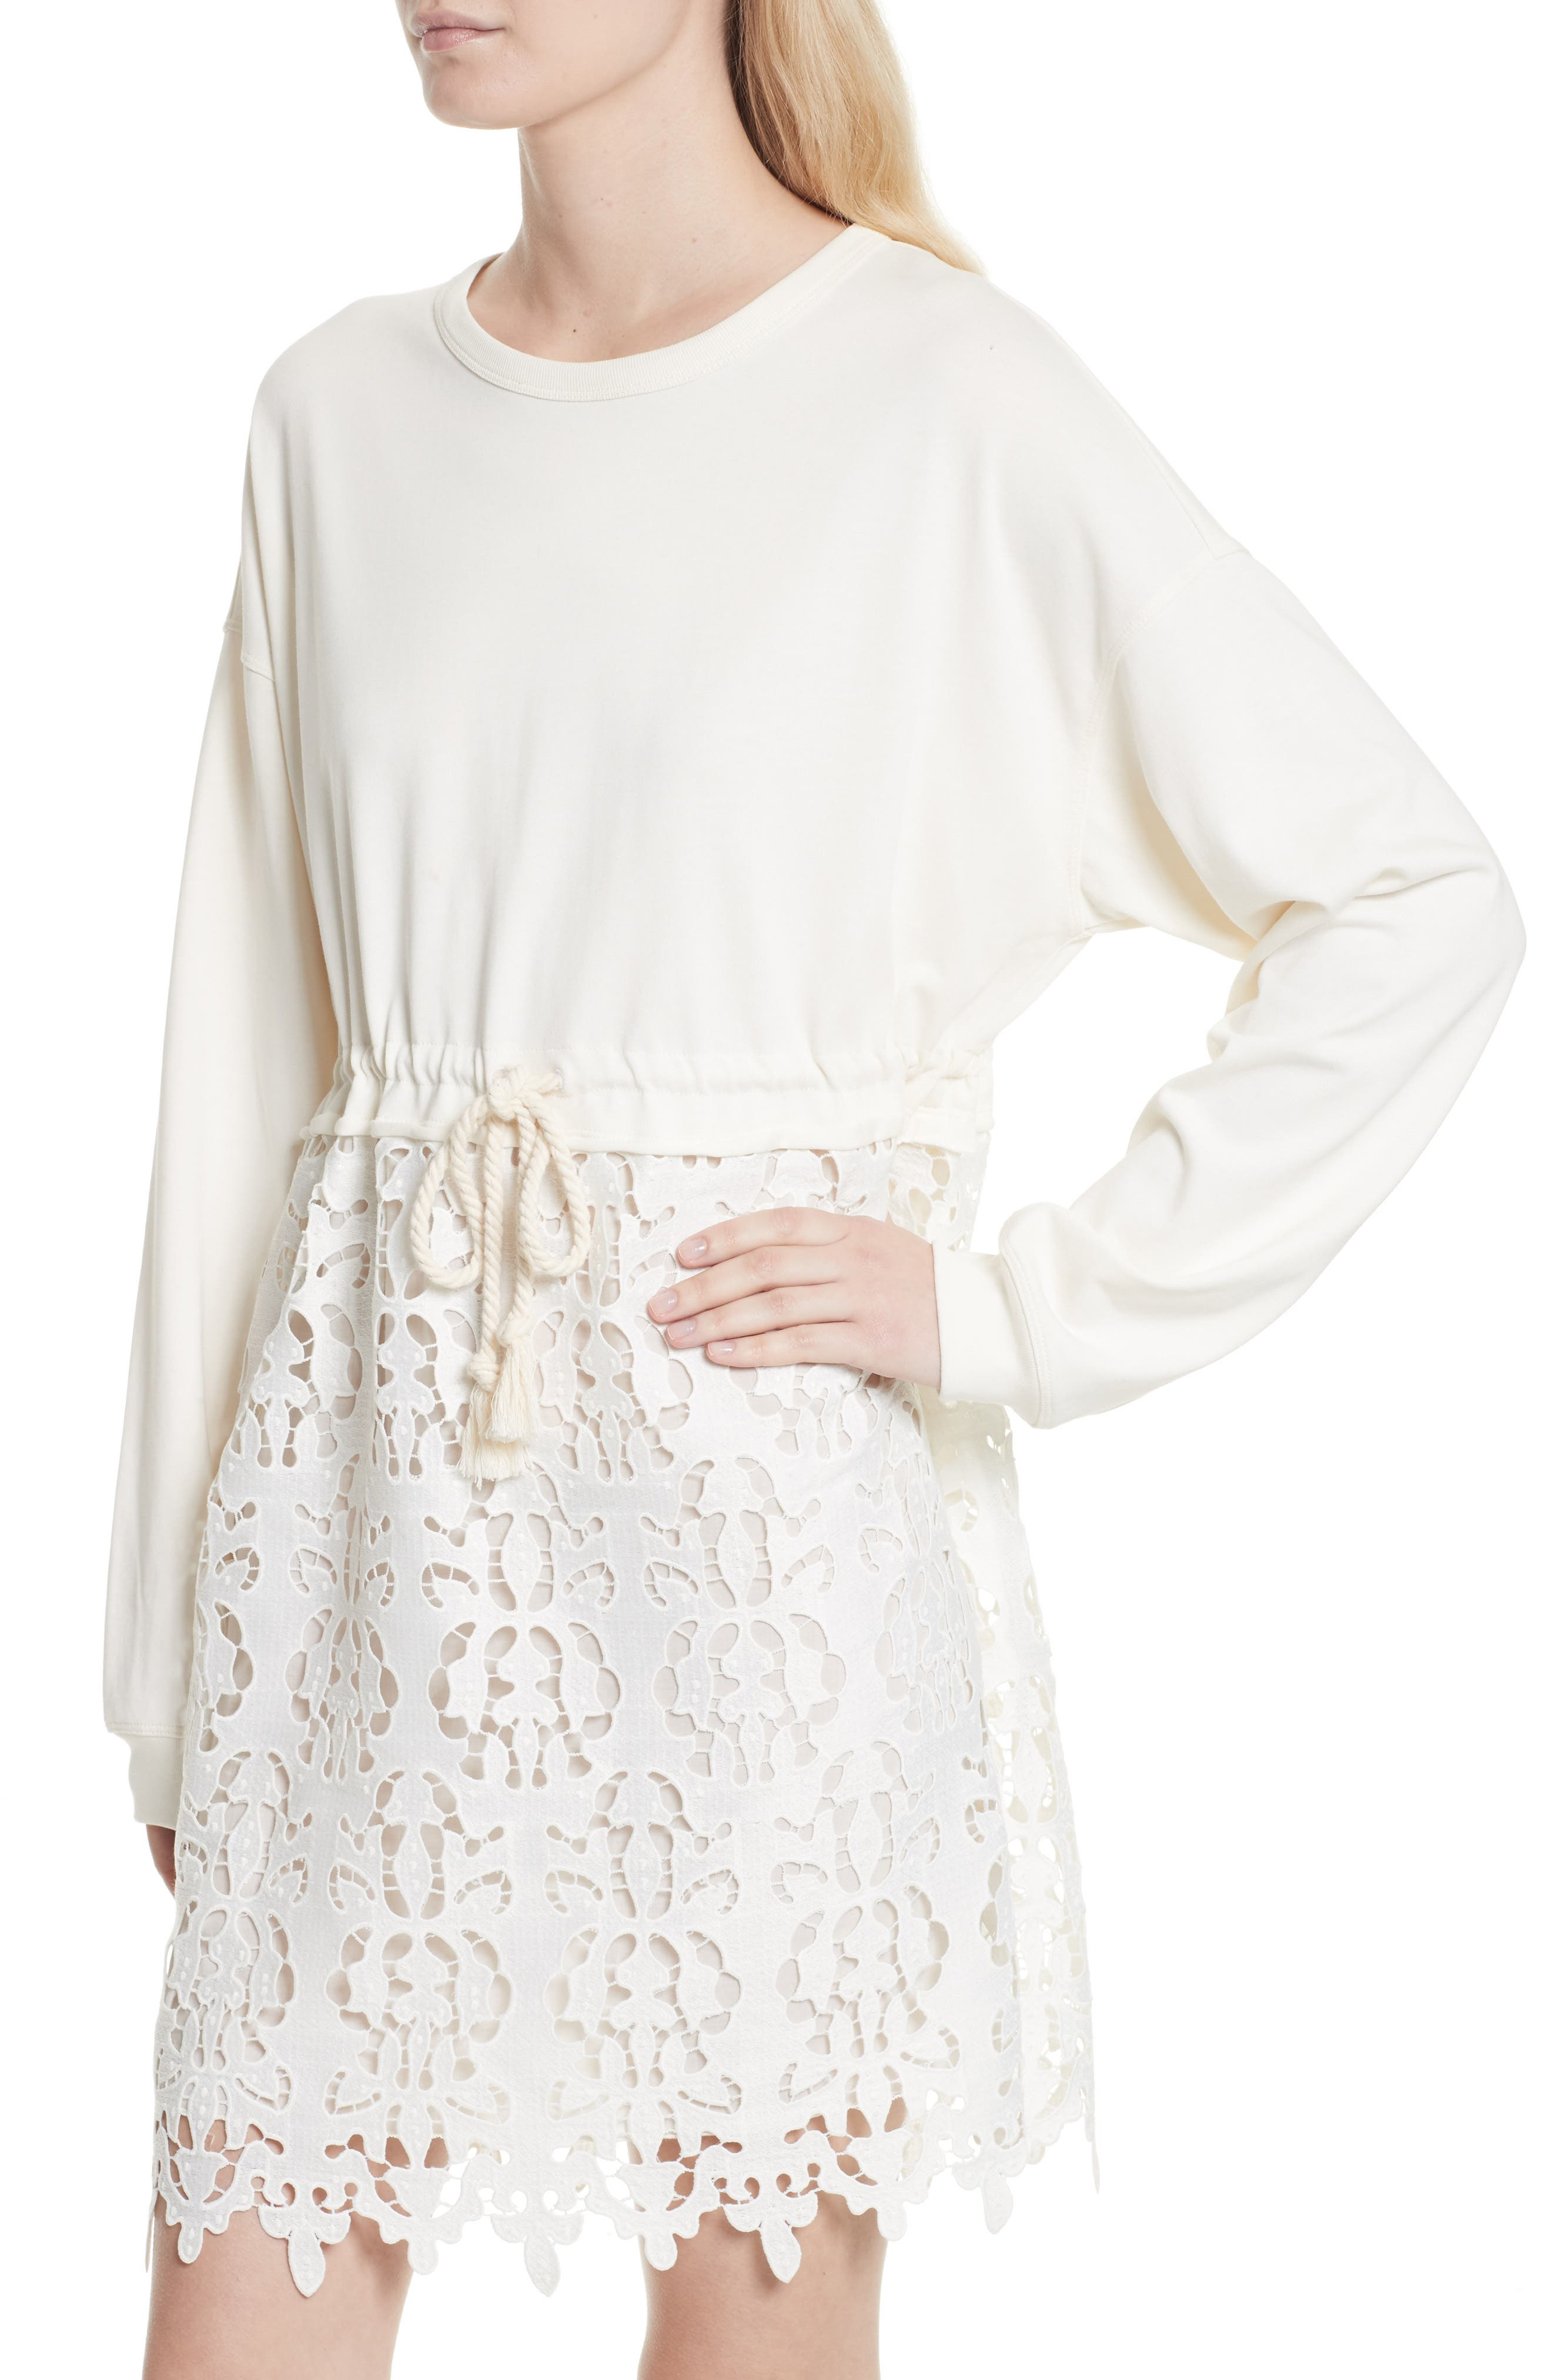 SEE BY CHLOÉ,                             Lace Skirt Sweatshirt Dress,                             Alternate thumbnail 4, color,                             101